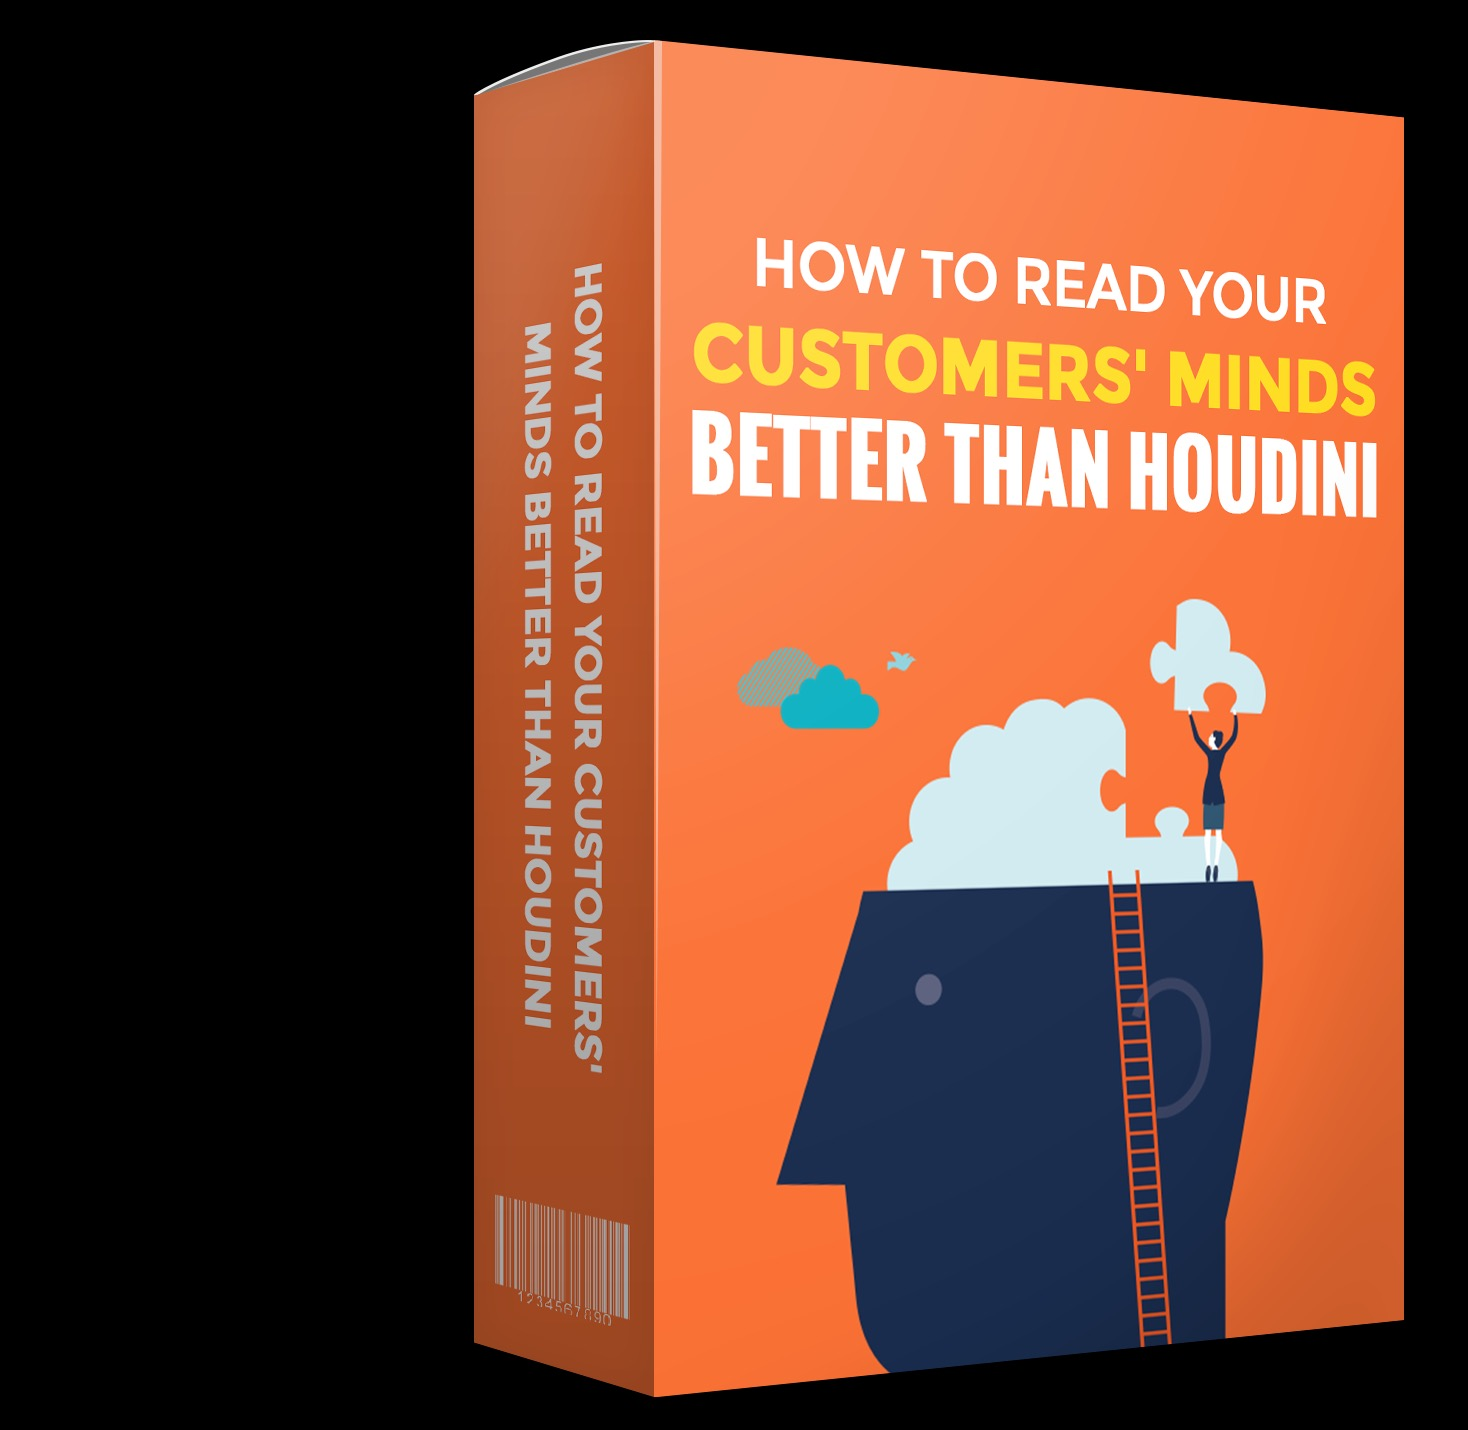 HOW TO READ YOUR CUSTOMERS' MINDS BETTER THAN HOUDINI